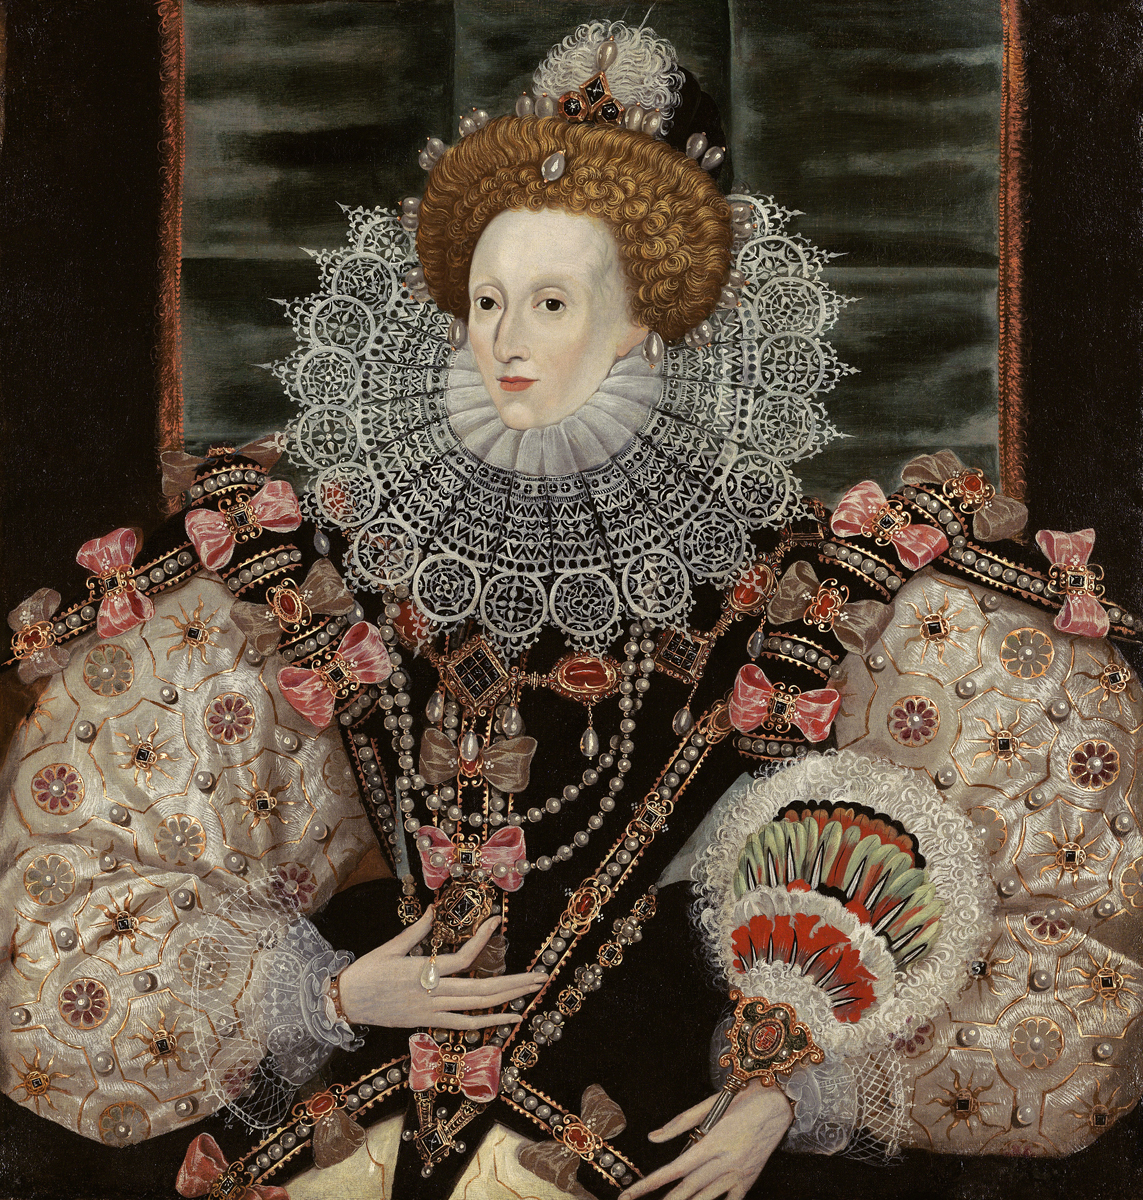 a biography and life work of elizabeth queen of england in 16th century